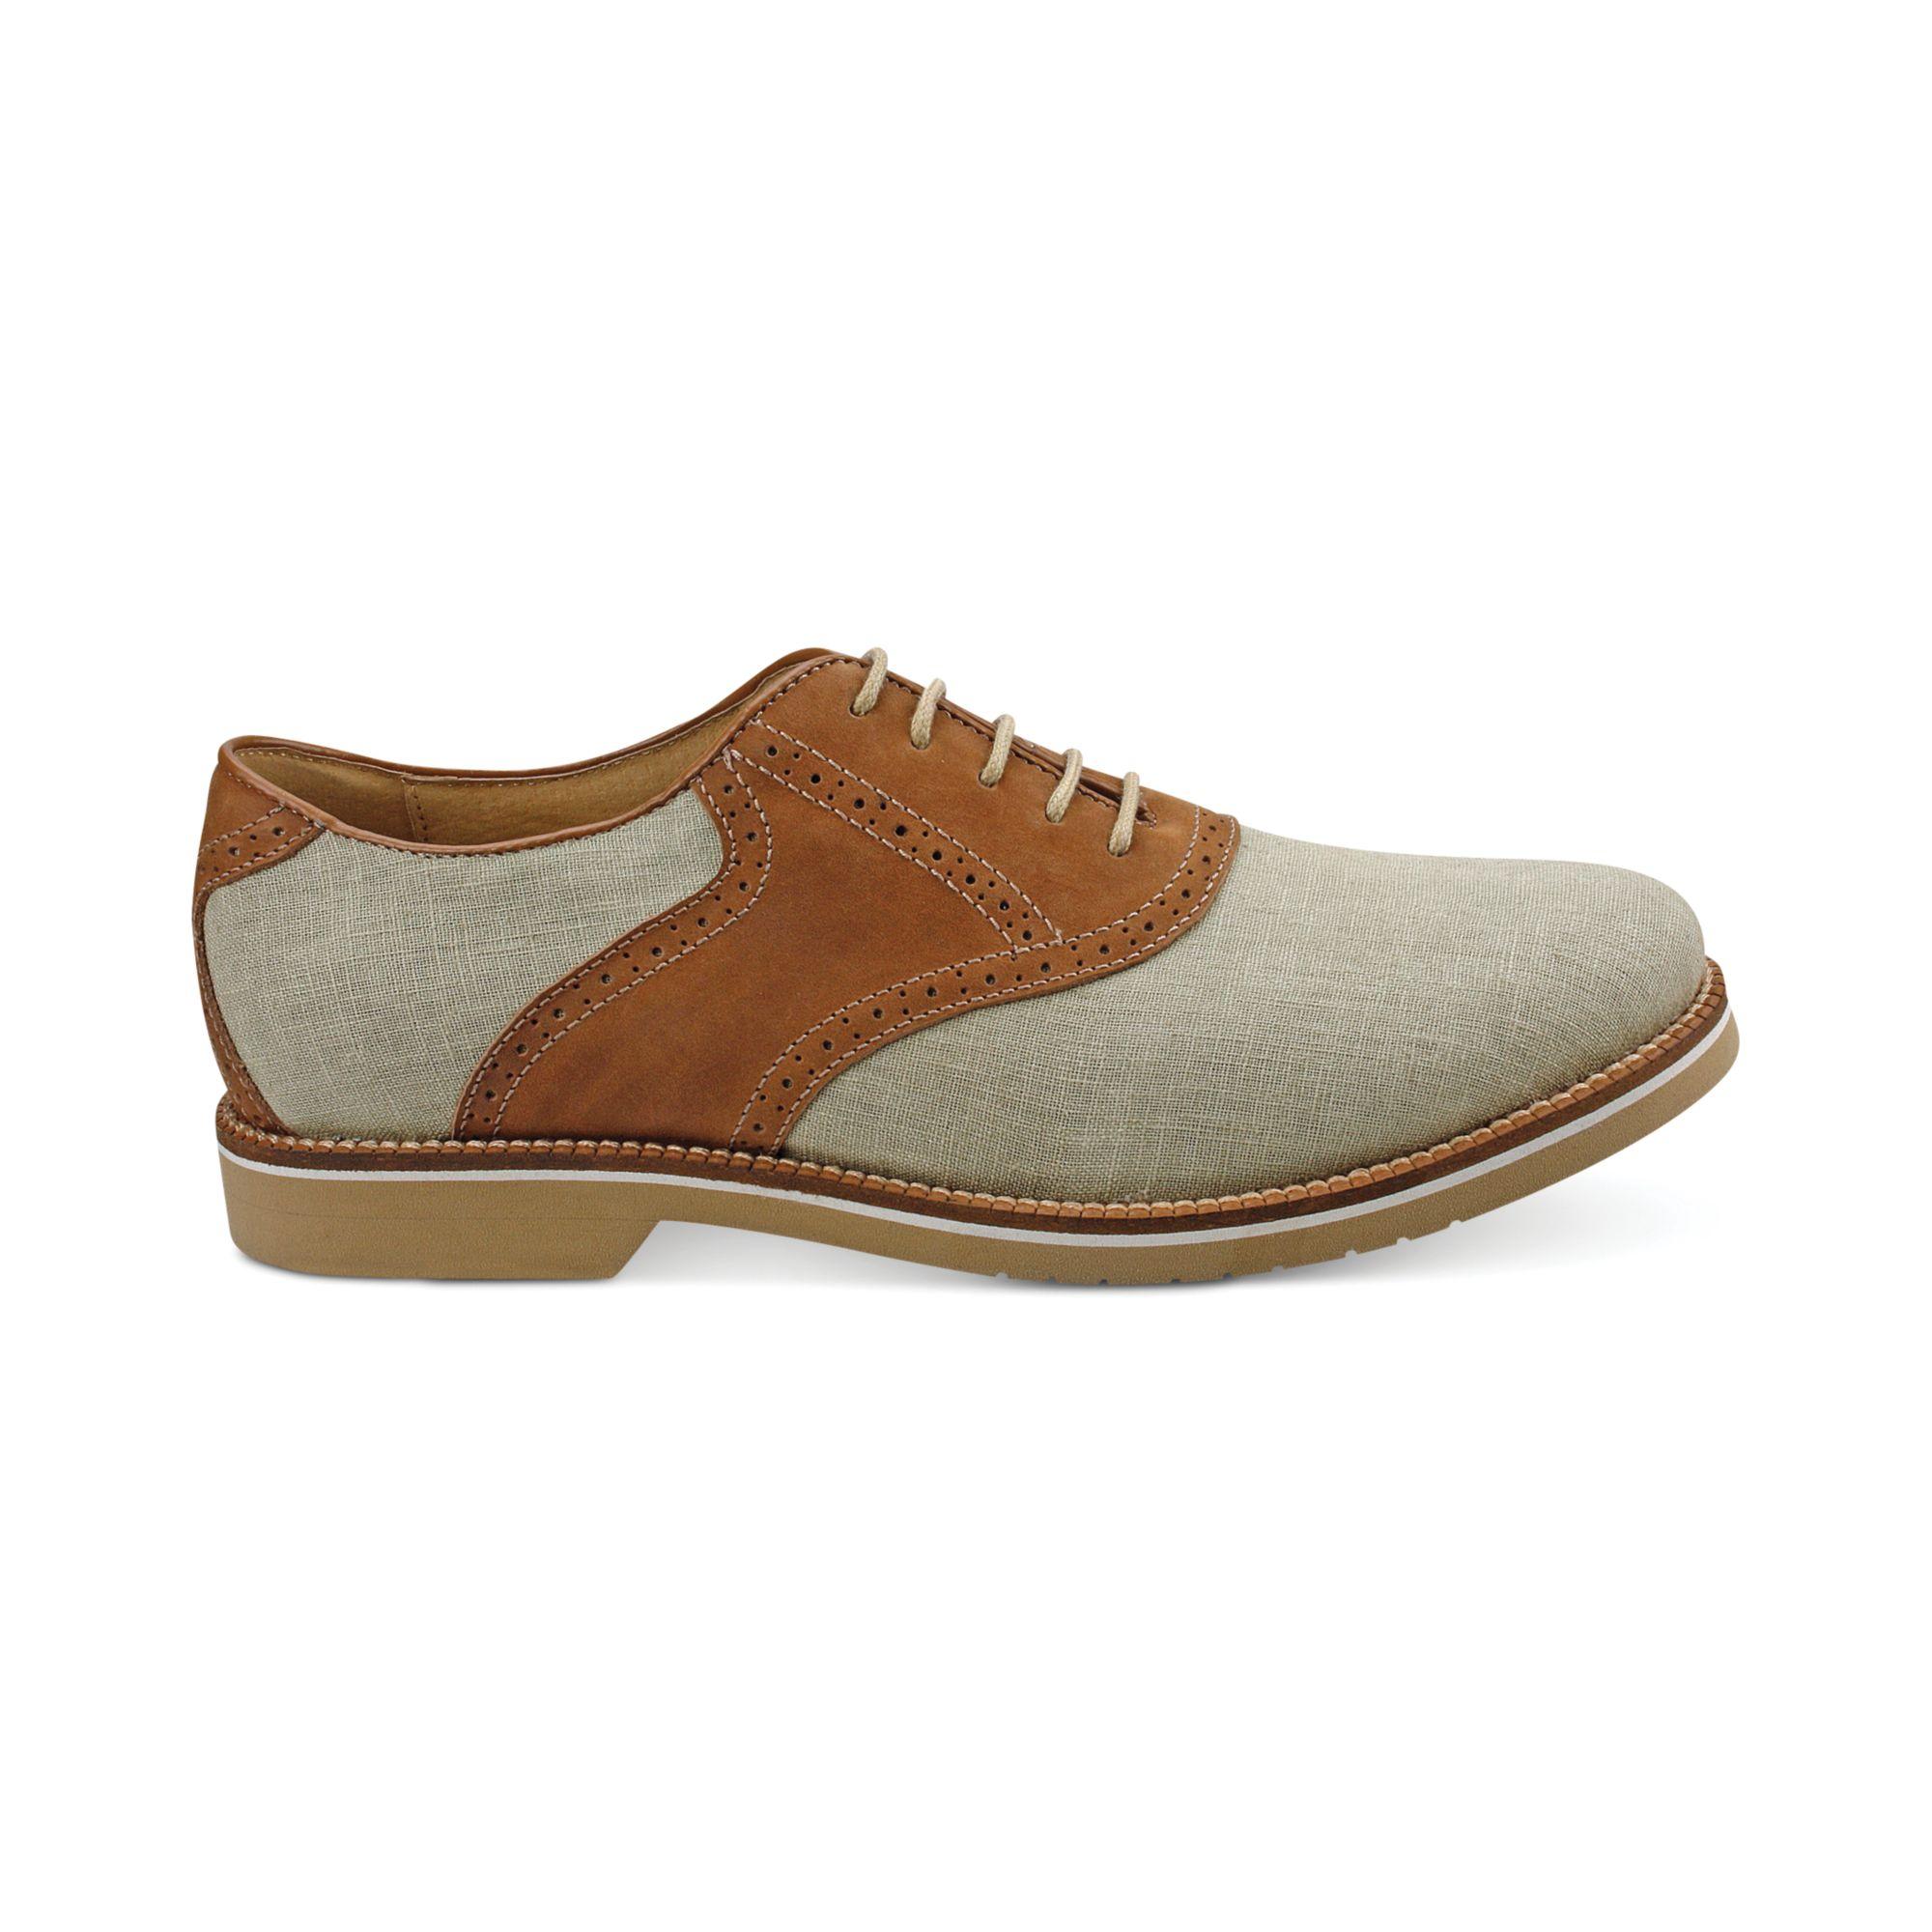 g h bass co carson saddle oxfords in beige for